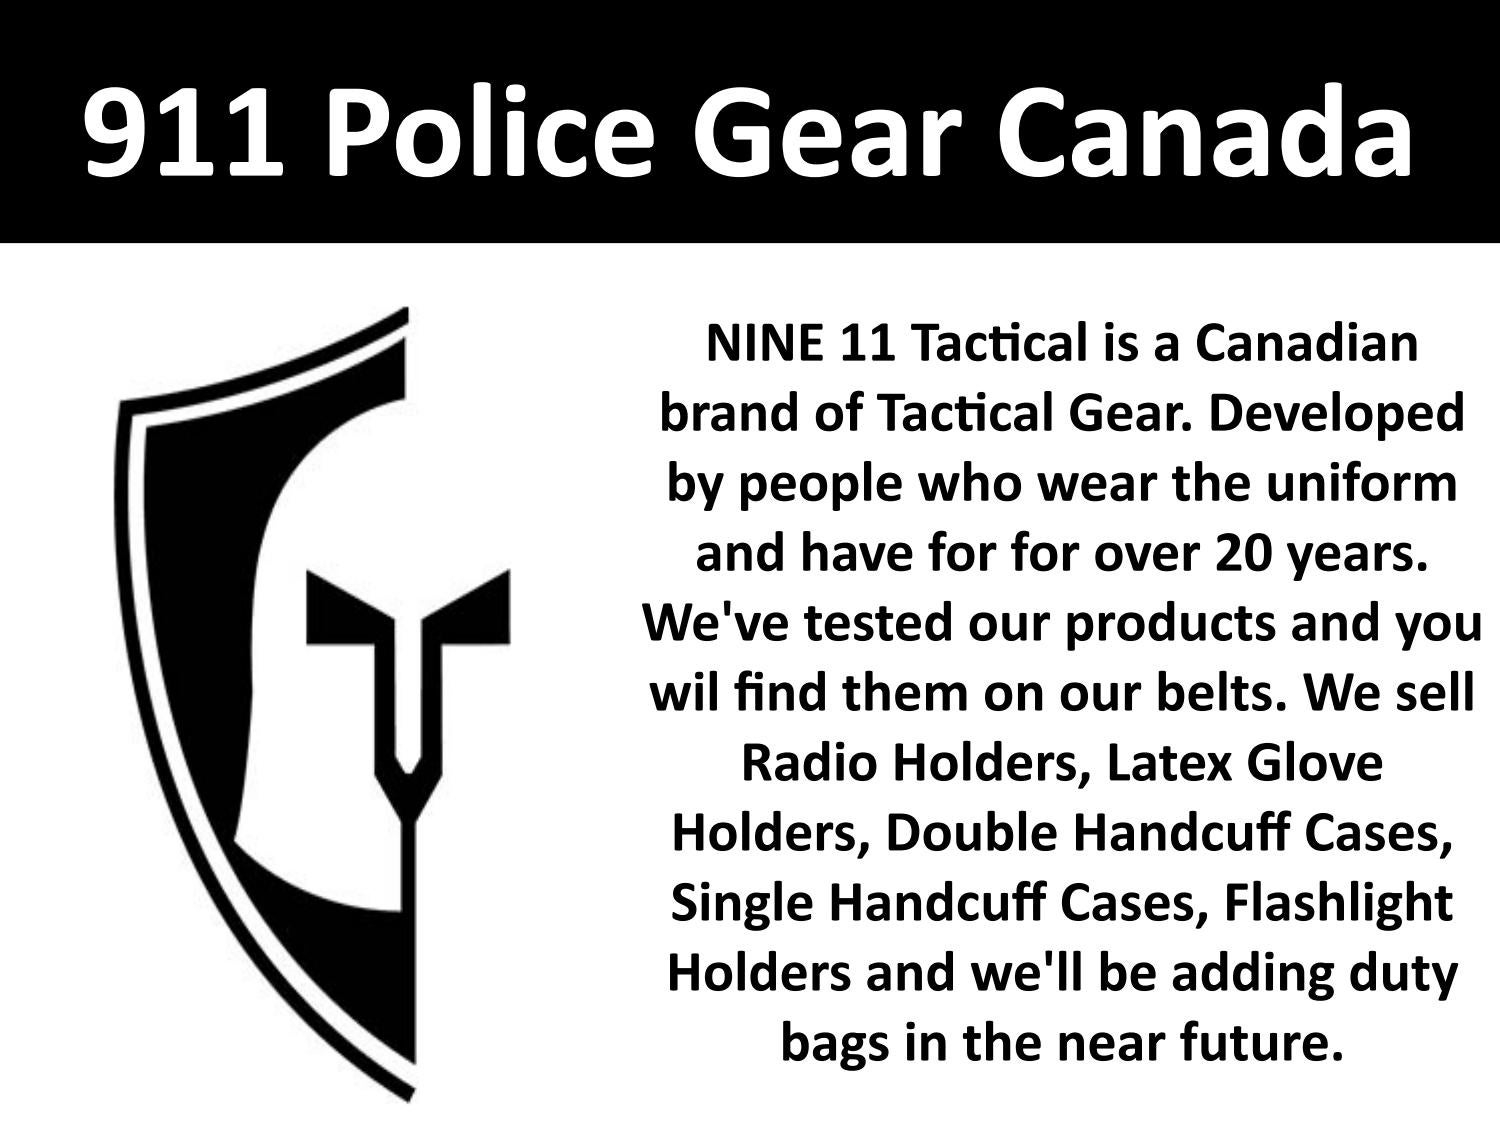 911 Police Gear Canada By Garry